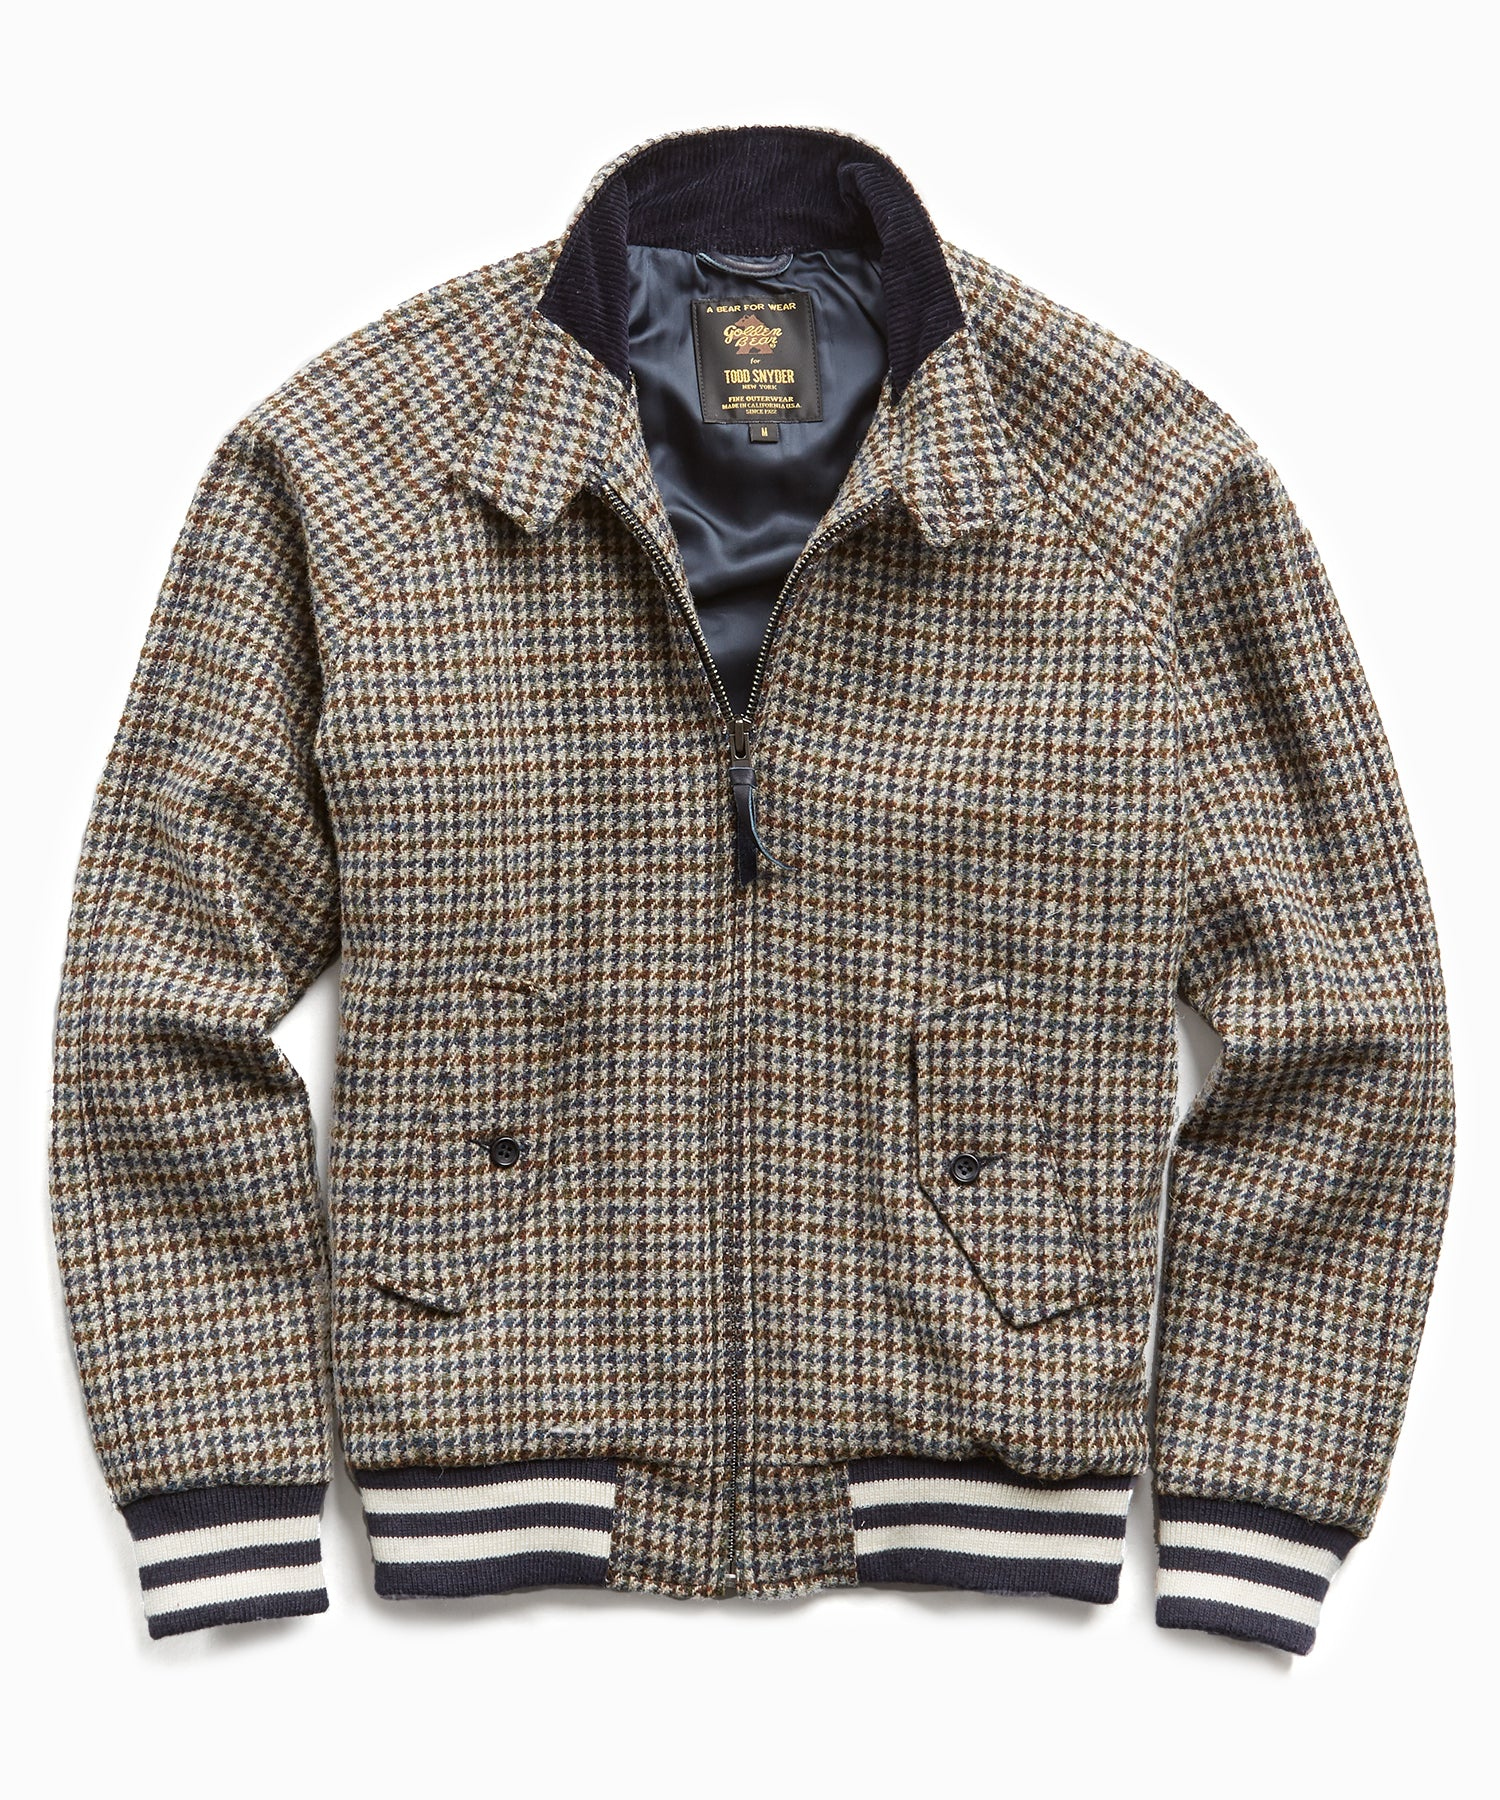 Exclusive Golden Bear + Todd Snyder Harris Tweed Bomber